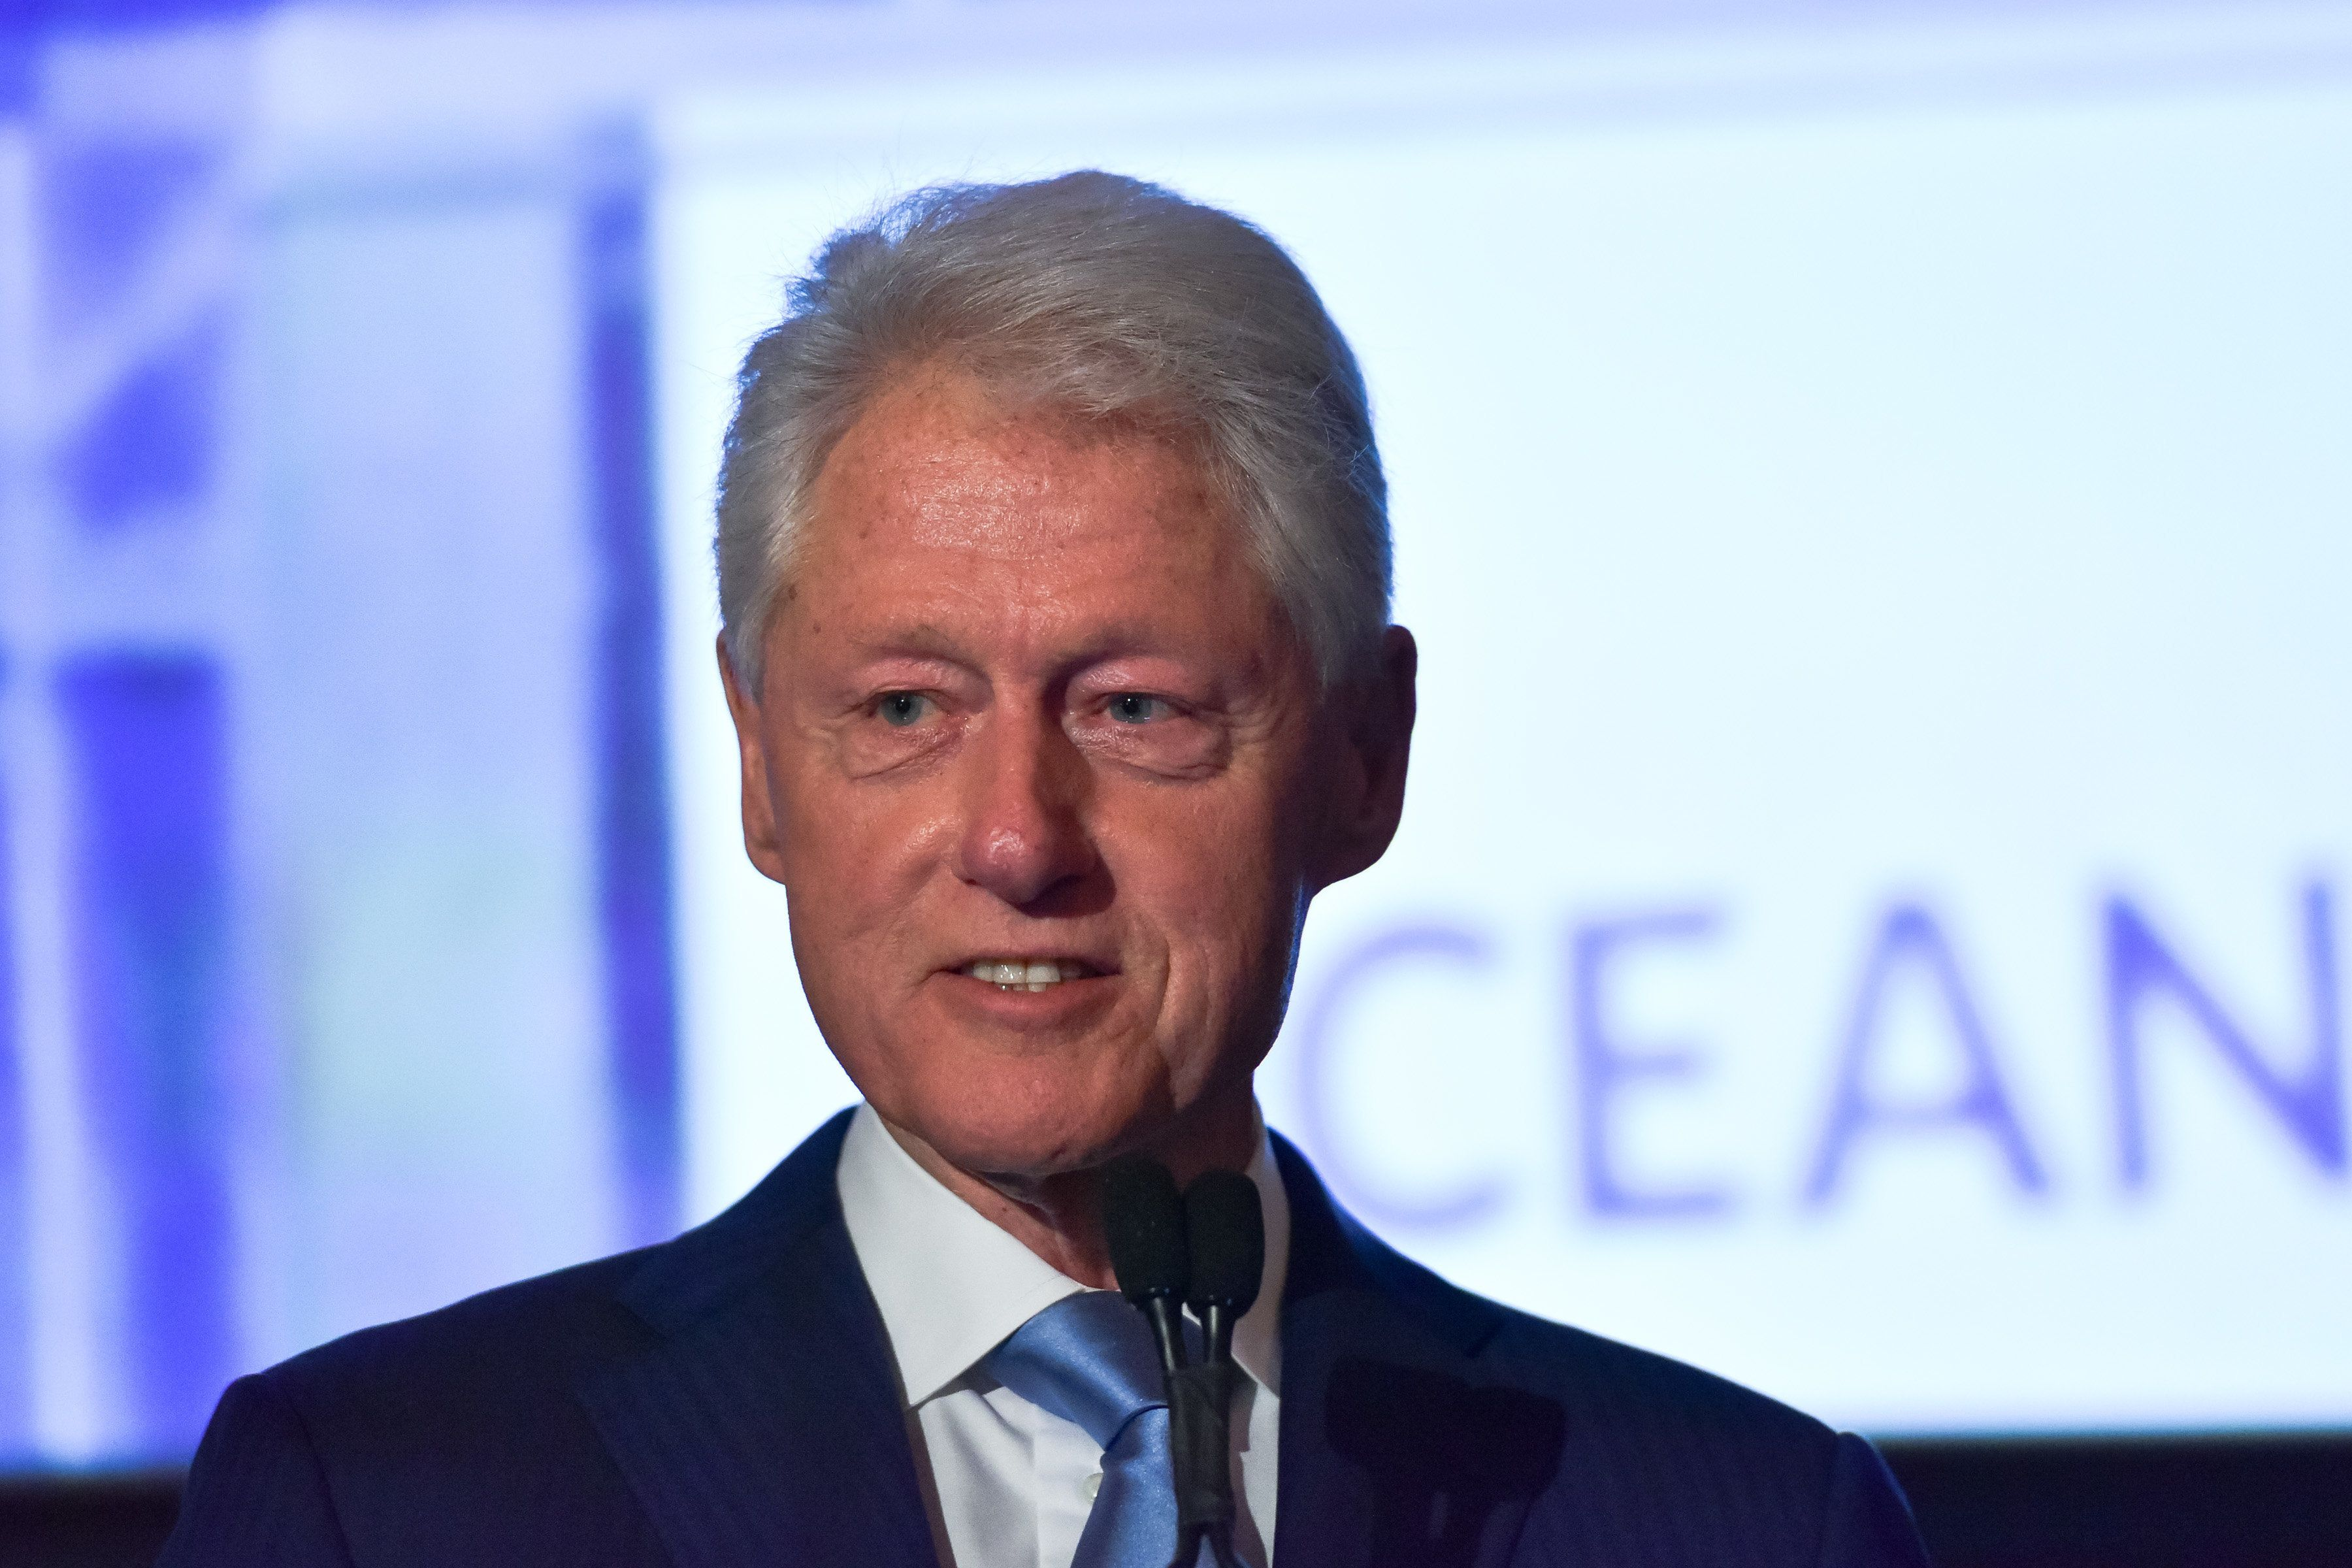 TARRYTOWN, NY - SEPTEMBER 13:  Former U.S. President Bill Clinton attends the Oceana New York Gala at Blue Hill at Stone Barns on September 13, 2017 in Tarrytown, New York.  (Photo by Sean Zanni/Patrick McMullan via Getty Images)